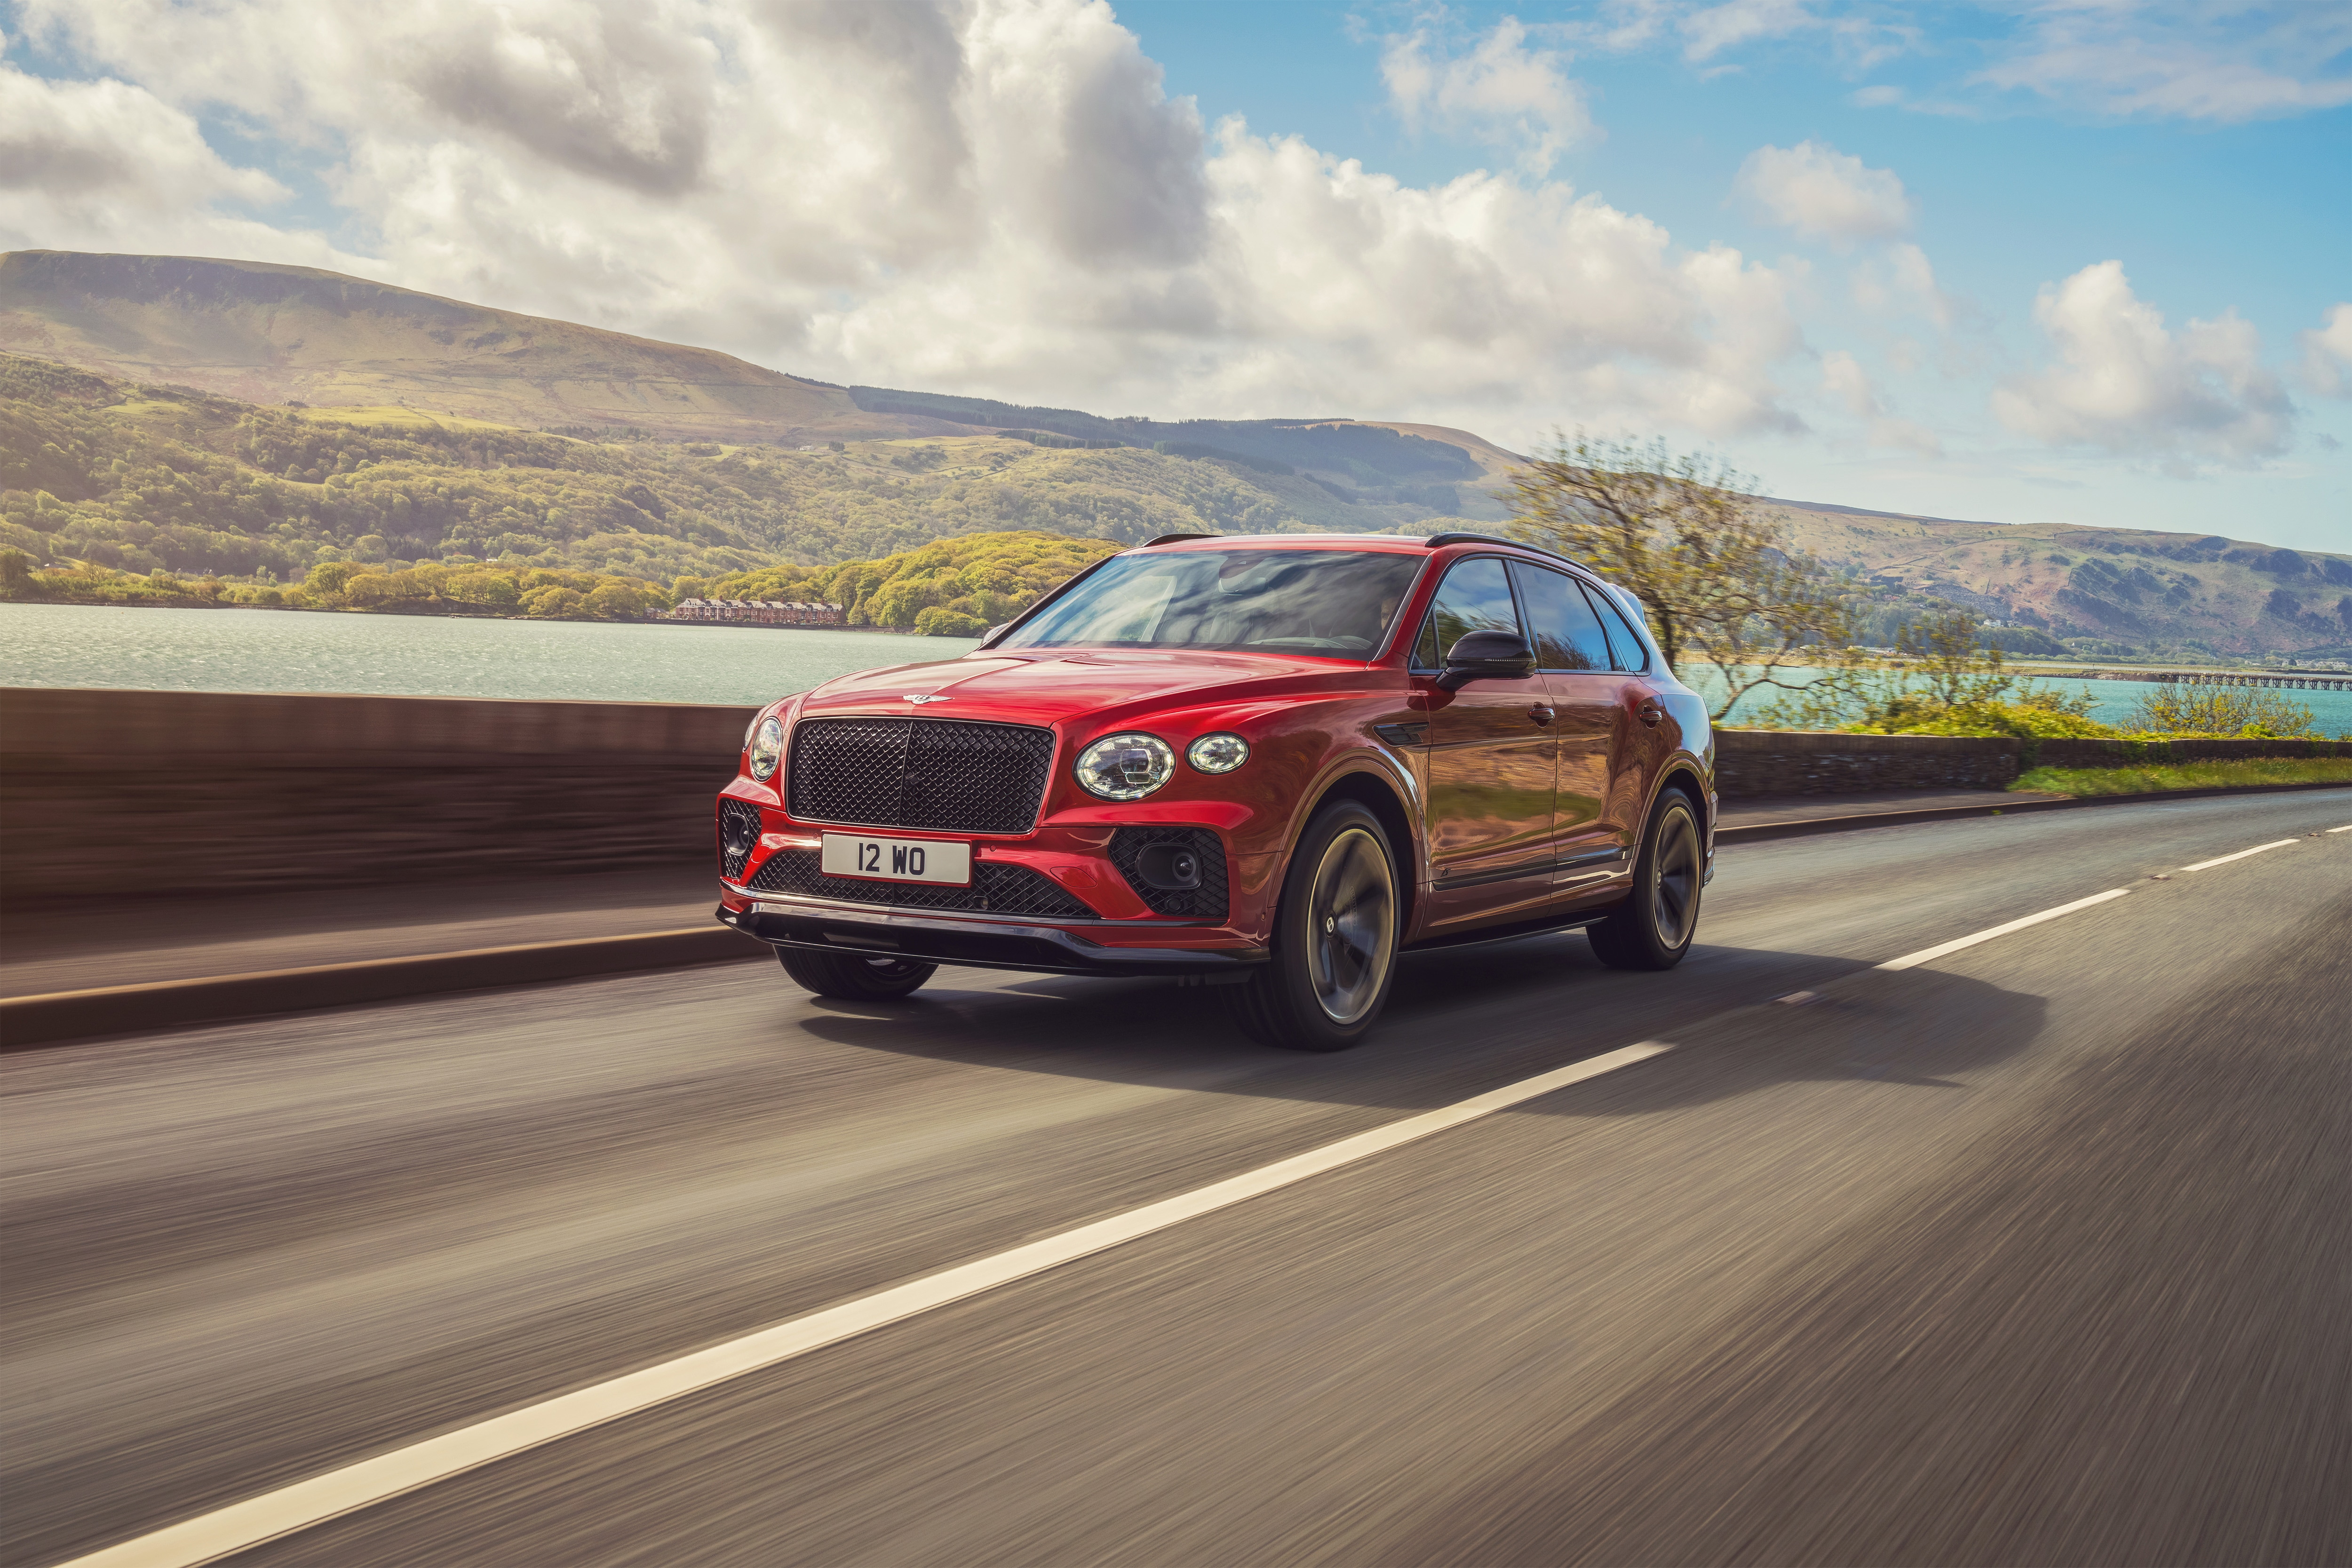 Bentayga S is the fourth model in the Bentayga range and is powered by a 4-litre twin-turbo V8 engine that can produce 542 bhp of maximum power. The SUV can sprint from zero to 100 kmph in just 4.4 seconds and has a top speed of 290 kmph.